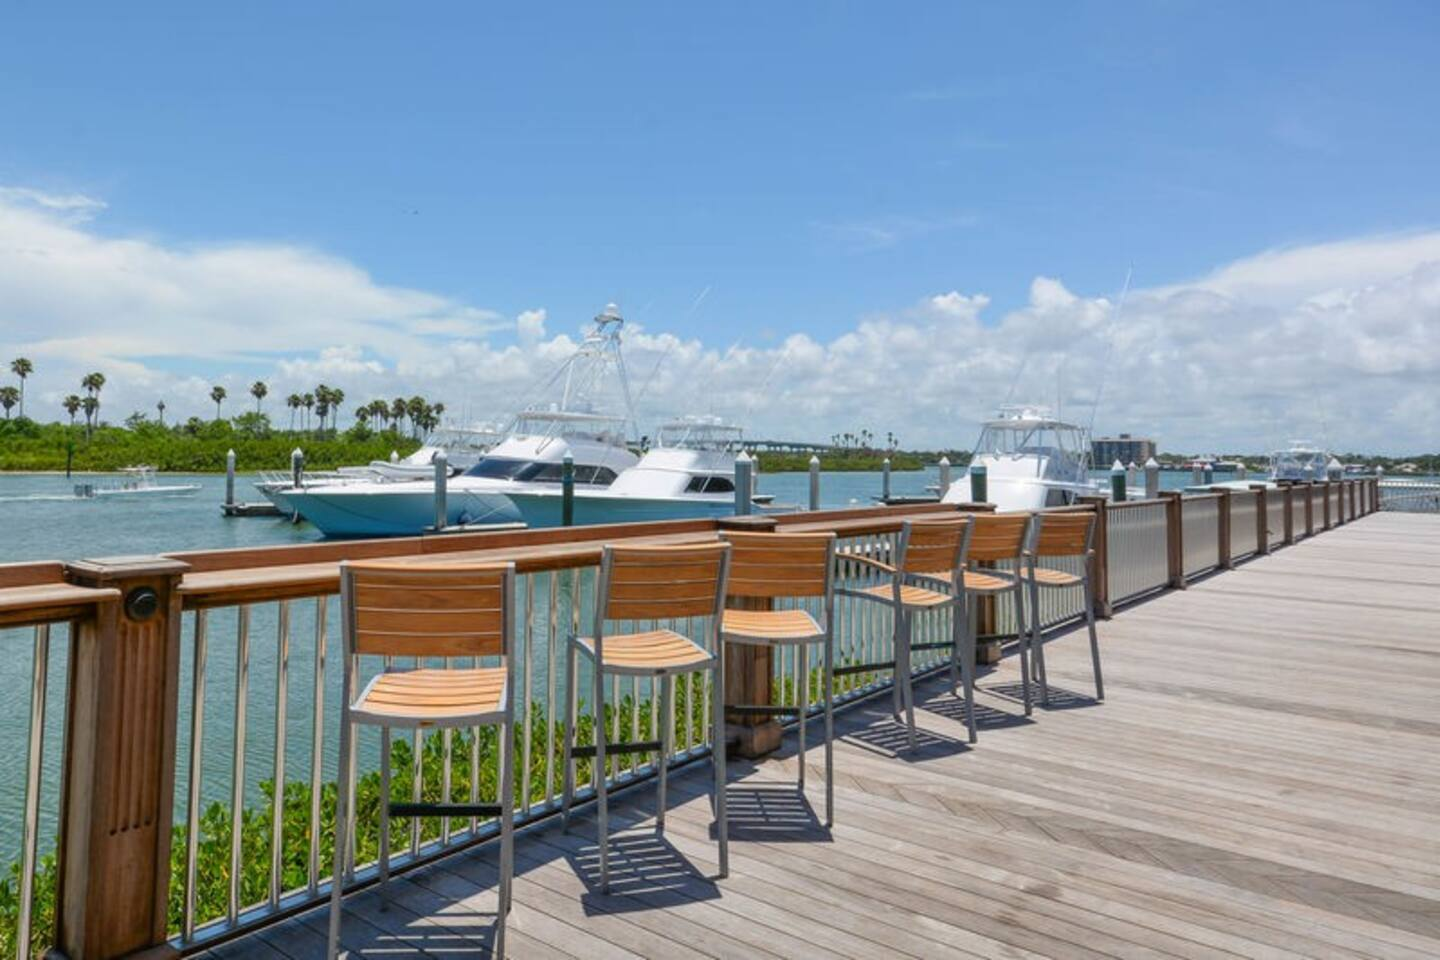 Outdoor seating at the marina to enjoy!